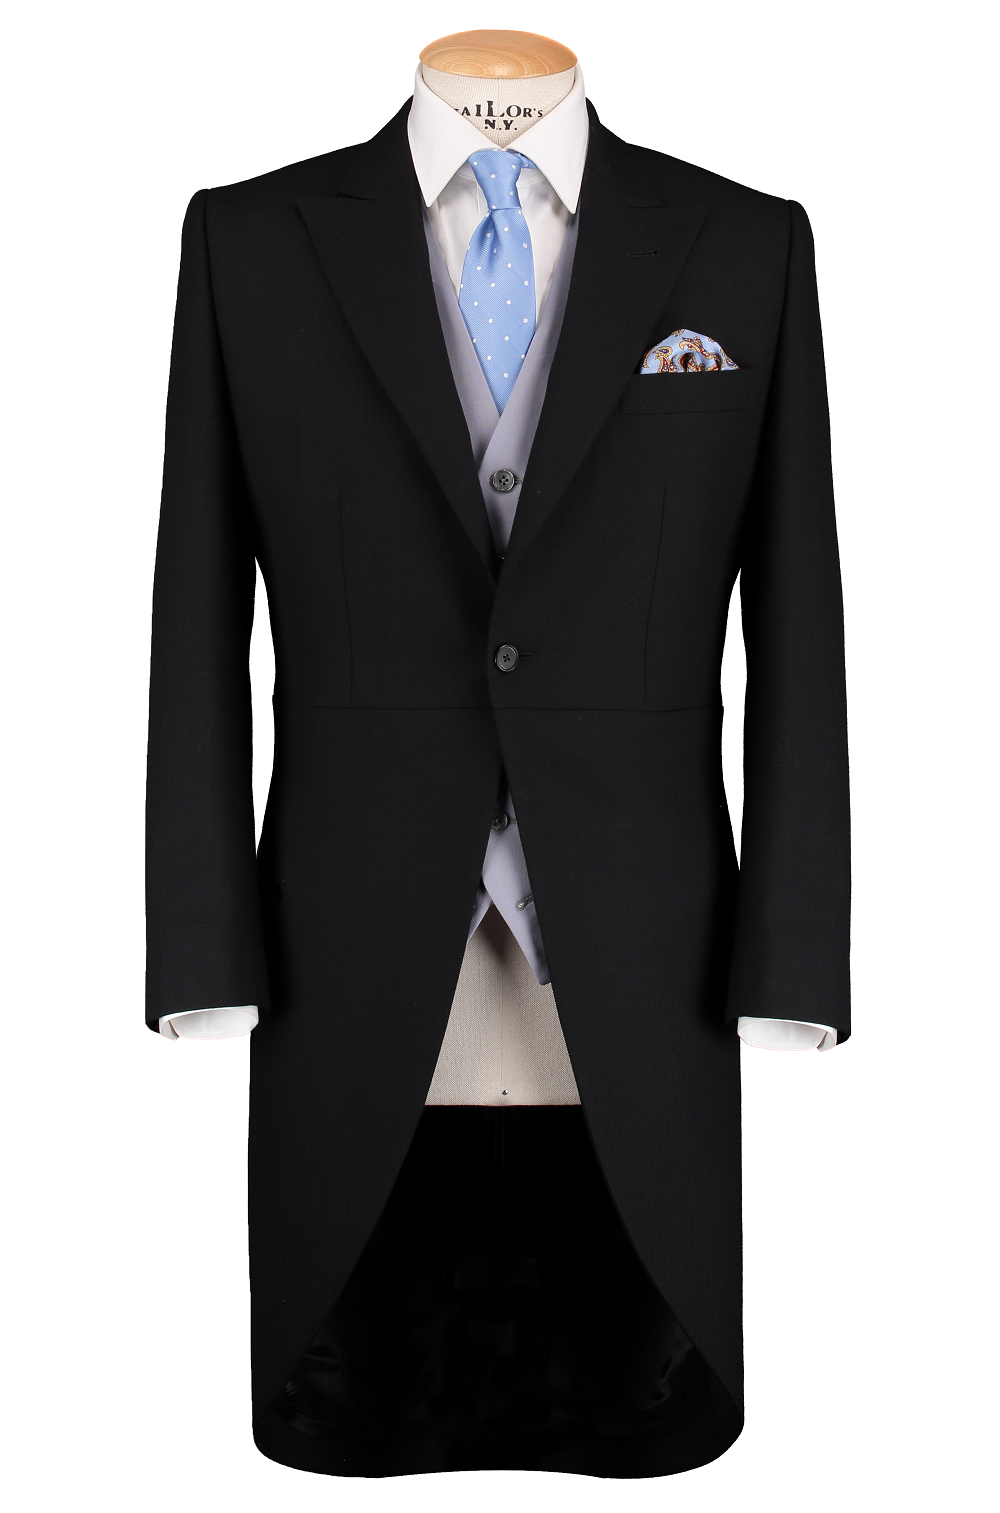 HW Black Morning Suit - Pinstripe with Single Breasted Baby Blue Waistcoat